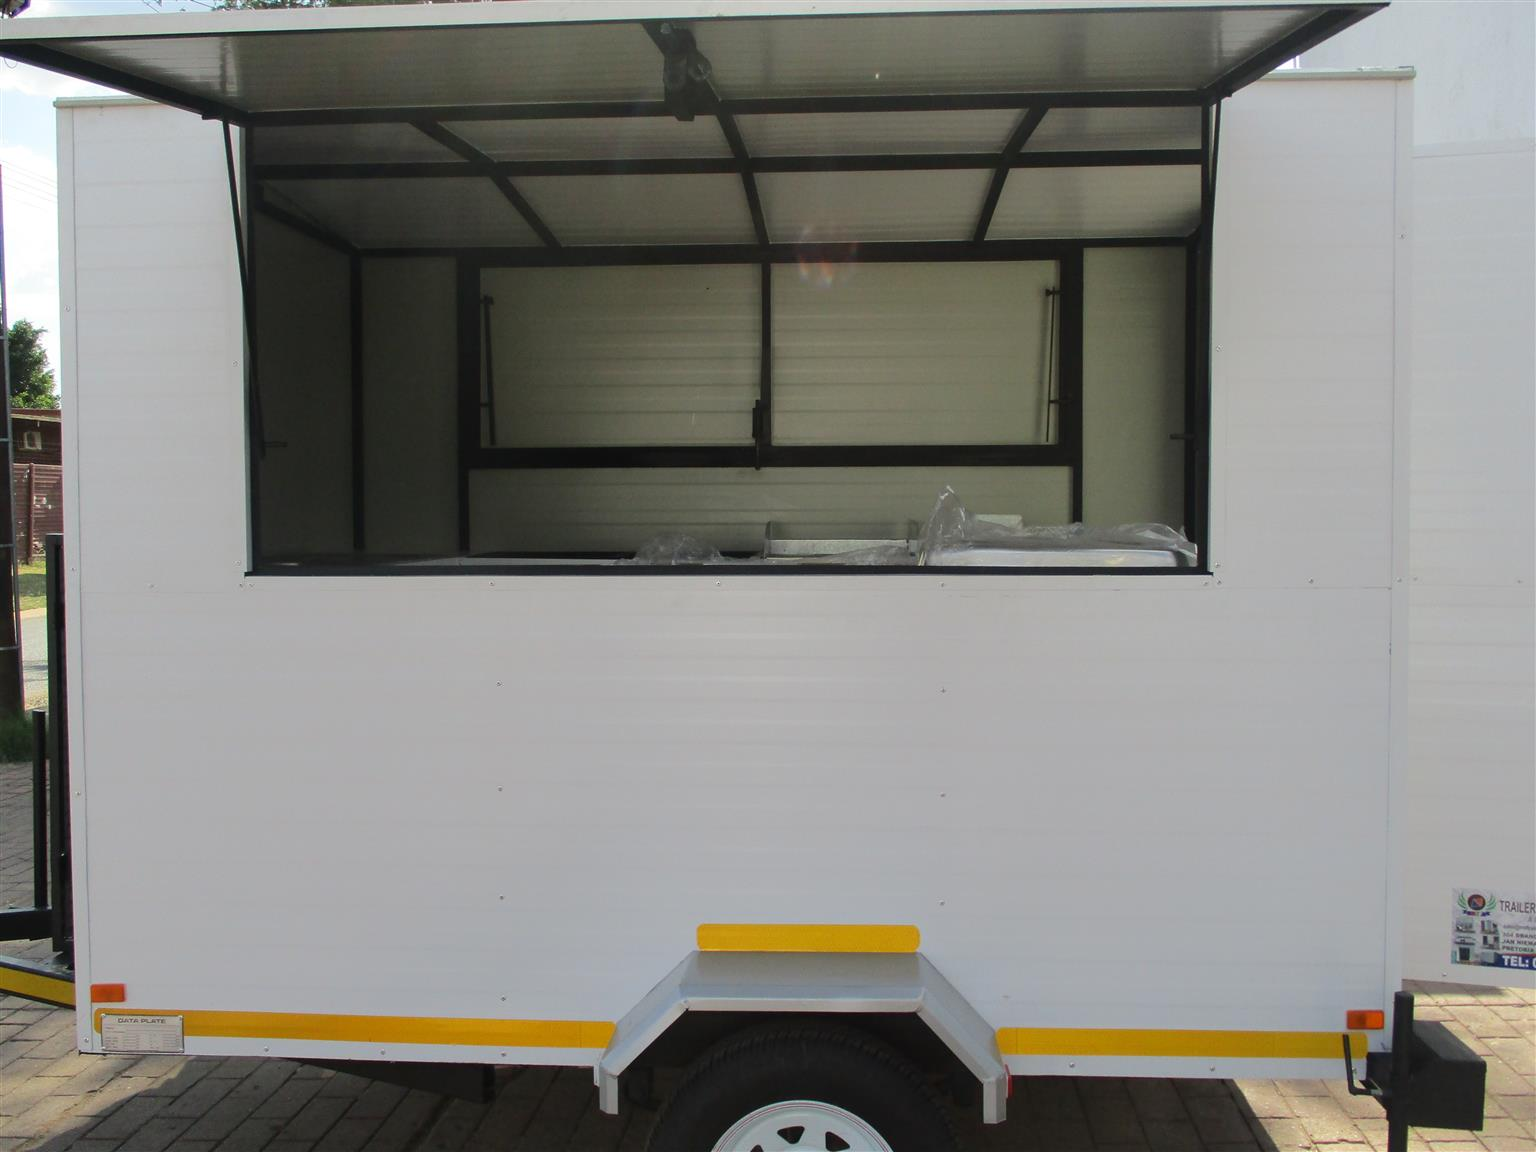 BUY AND COLLECT OUR MOBILE KITCHENS